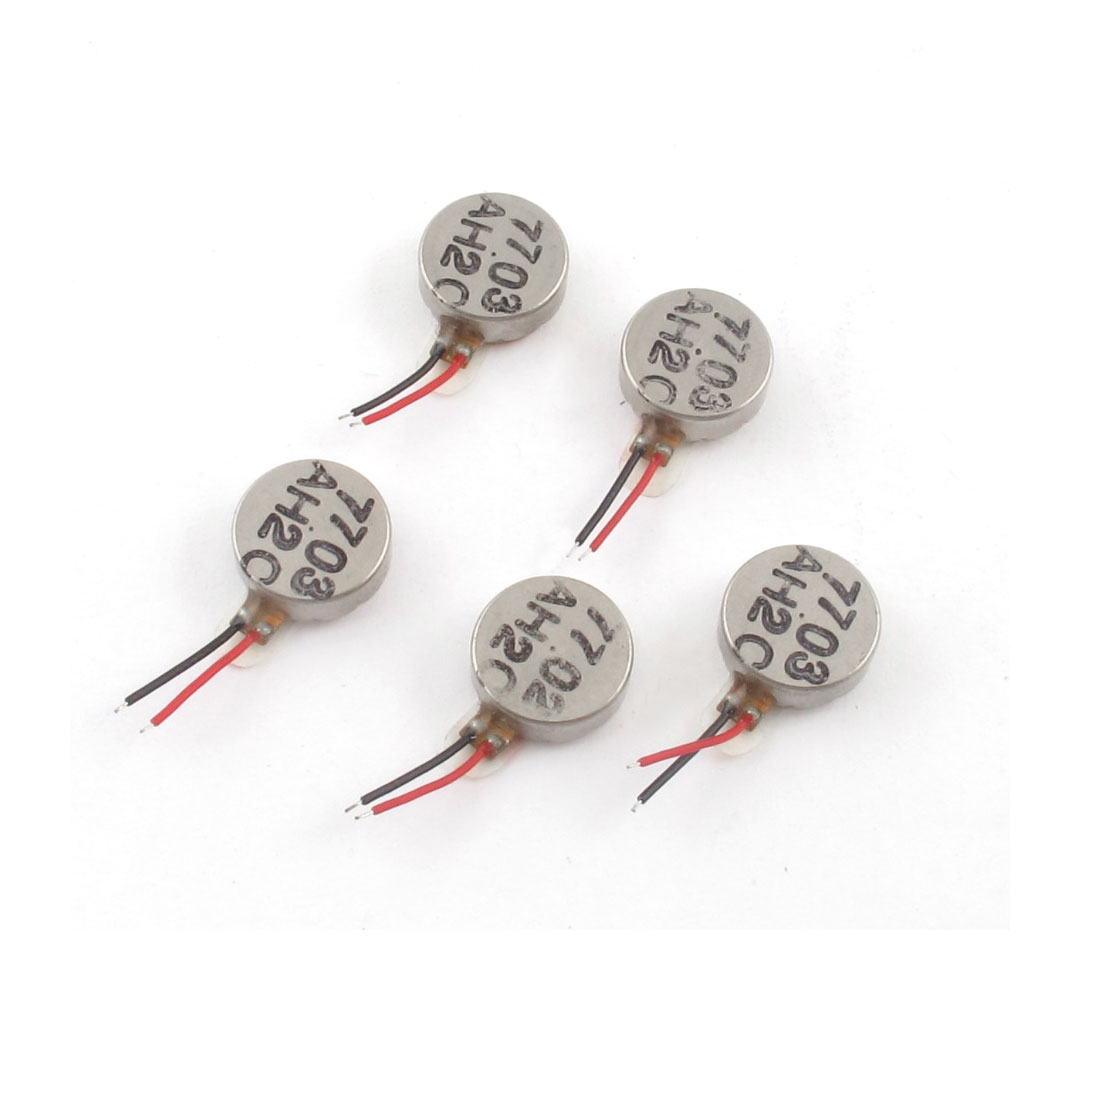 5Pcs-DC-3V-12000RPM-Speed-Button-Type-Vibrating-Motor-for-Mobile-Phone-Masssger